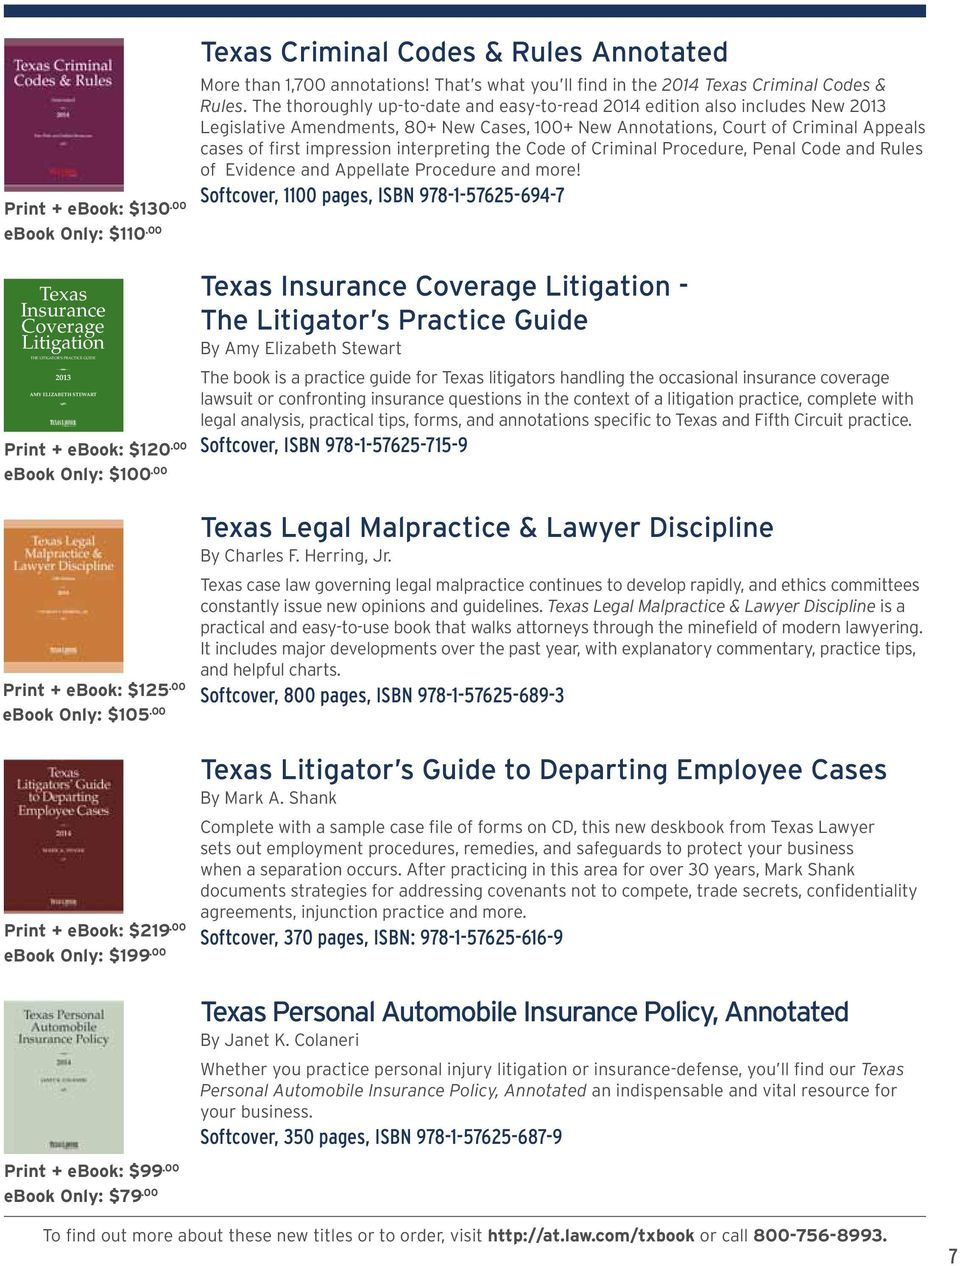 00 ebook Only: $199.00 Texas Criminal Codes & Rules Annotated More than 1,700 annotations! That s what you ll find in the 2014 Texas Criminal Codes & Rules.